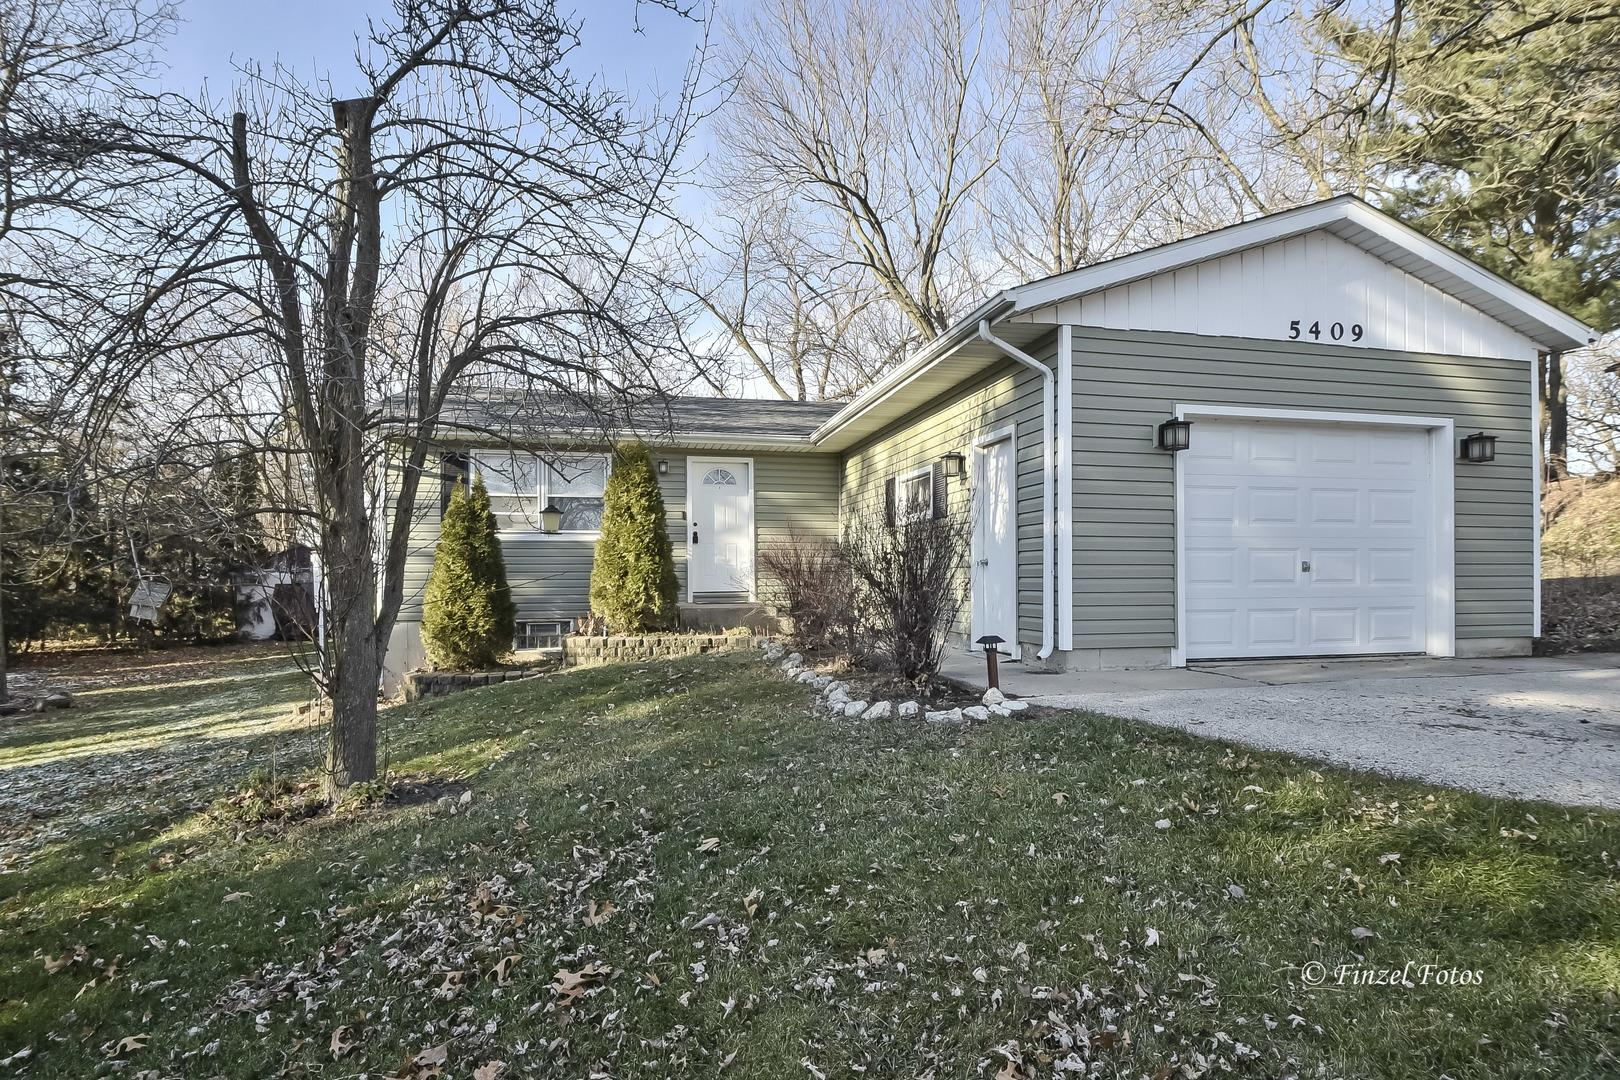 5409 Summerville Avenue, Wonder Lake, IL 60097 - #: 10956377